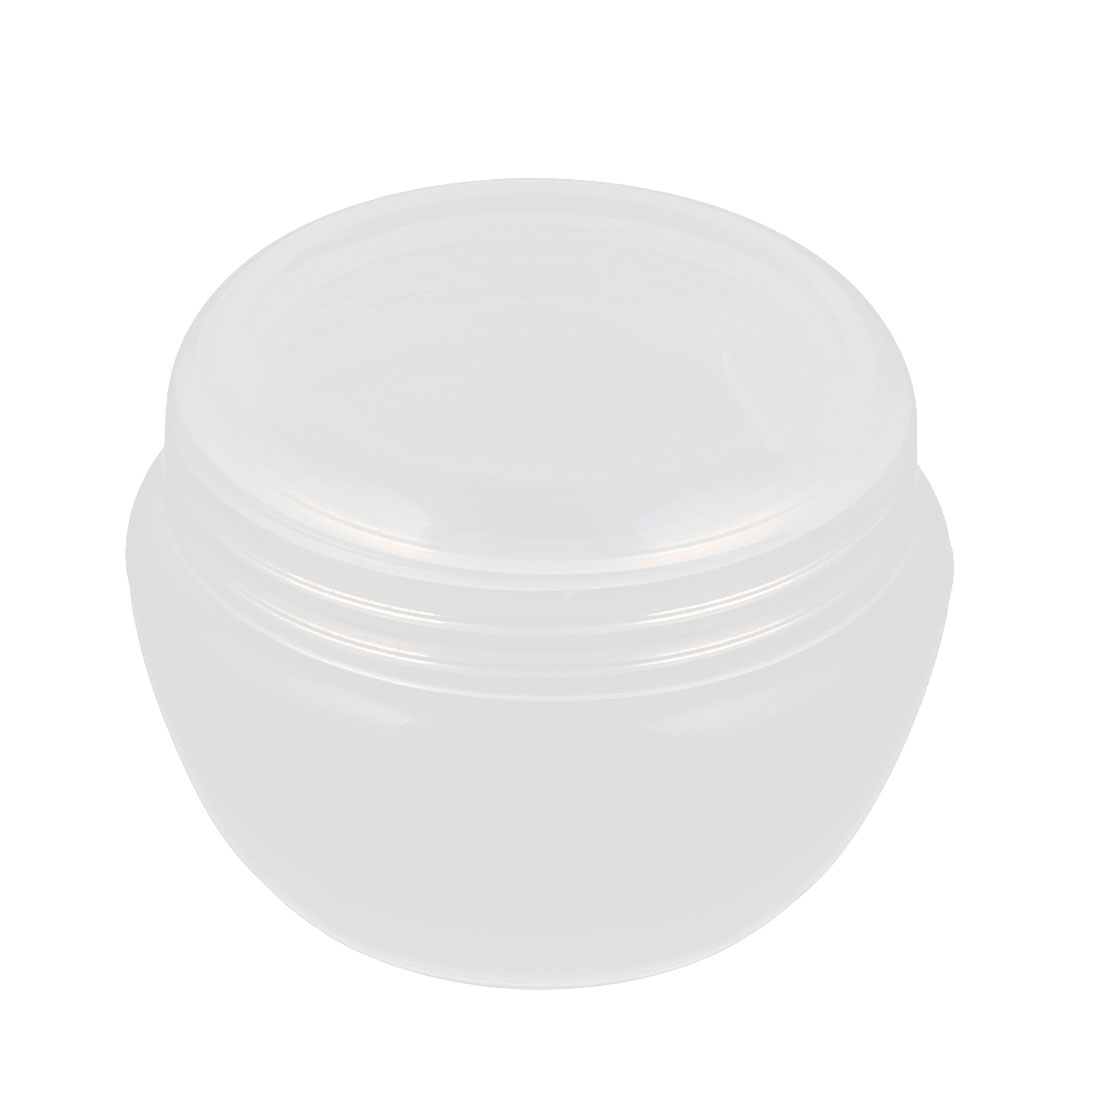 Clear Plastic Makeup Cosmetic Empty Jar Pot Face Cream Skin Lotion Bottle Container Holder 30g